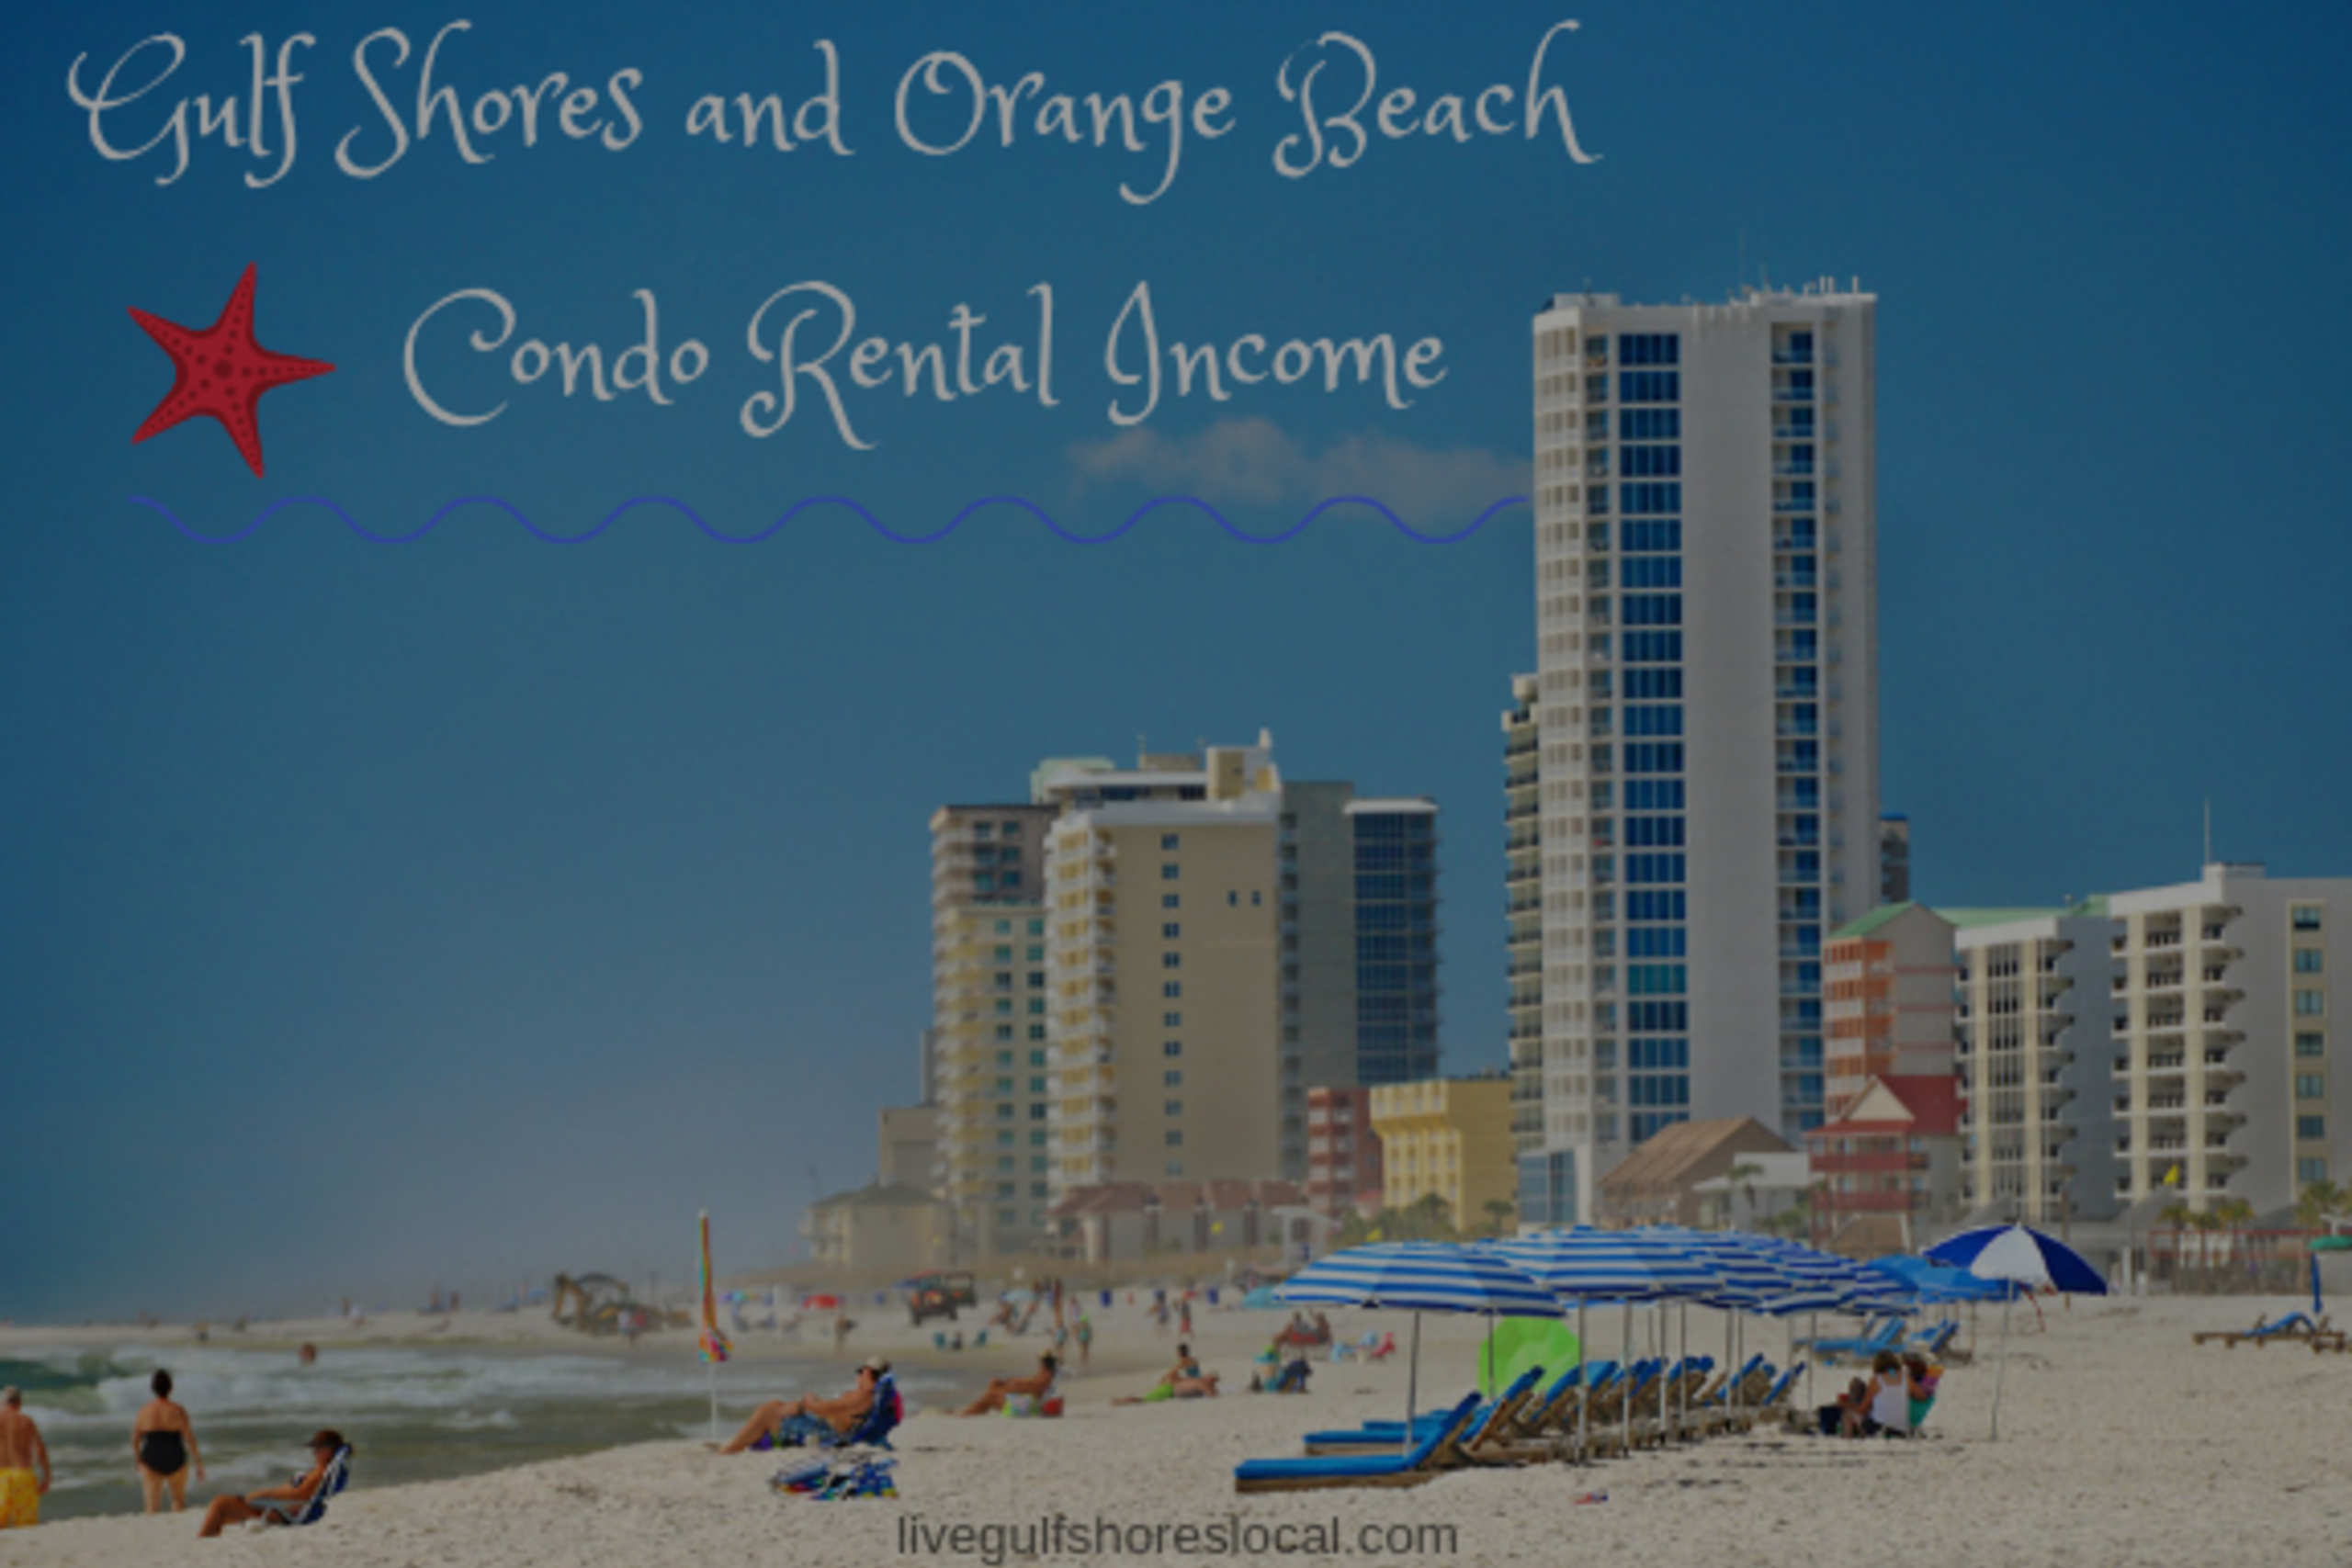 Gulf Shores and Orange Beach Condo Rental Income